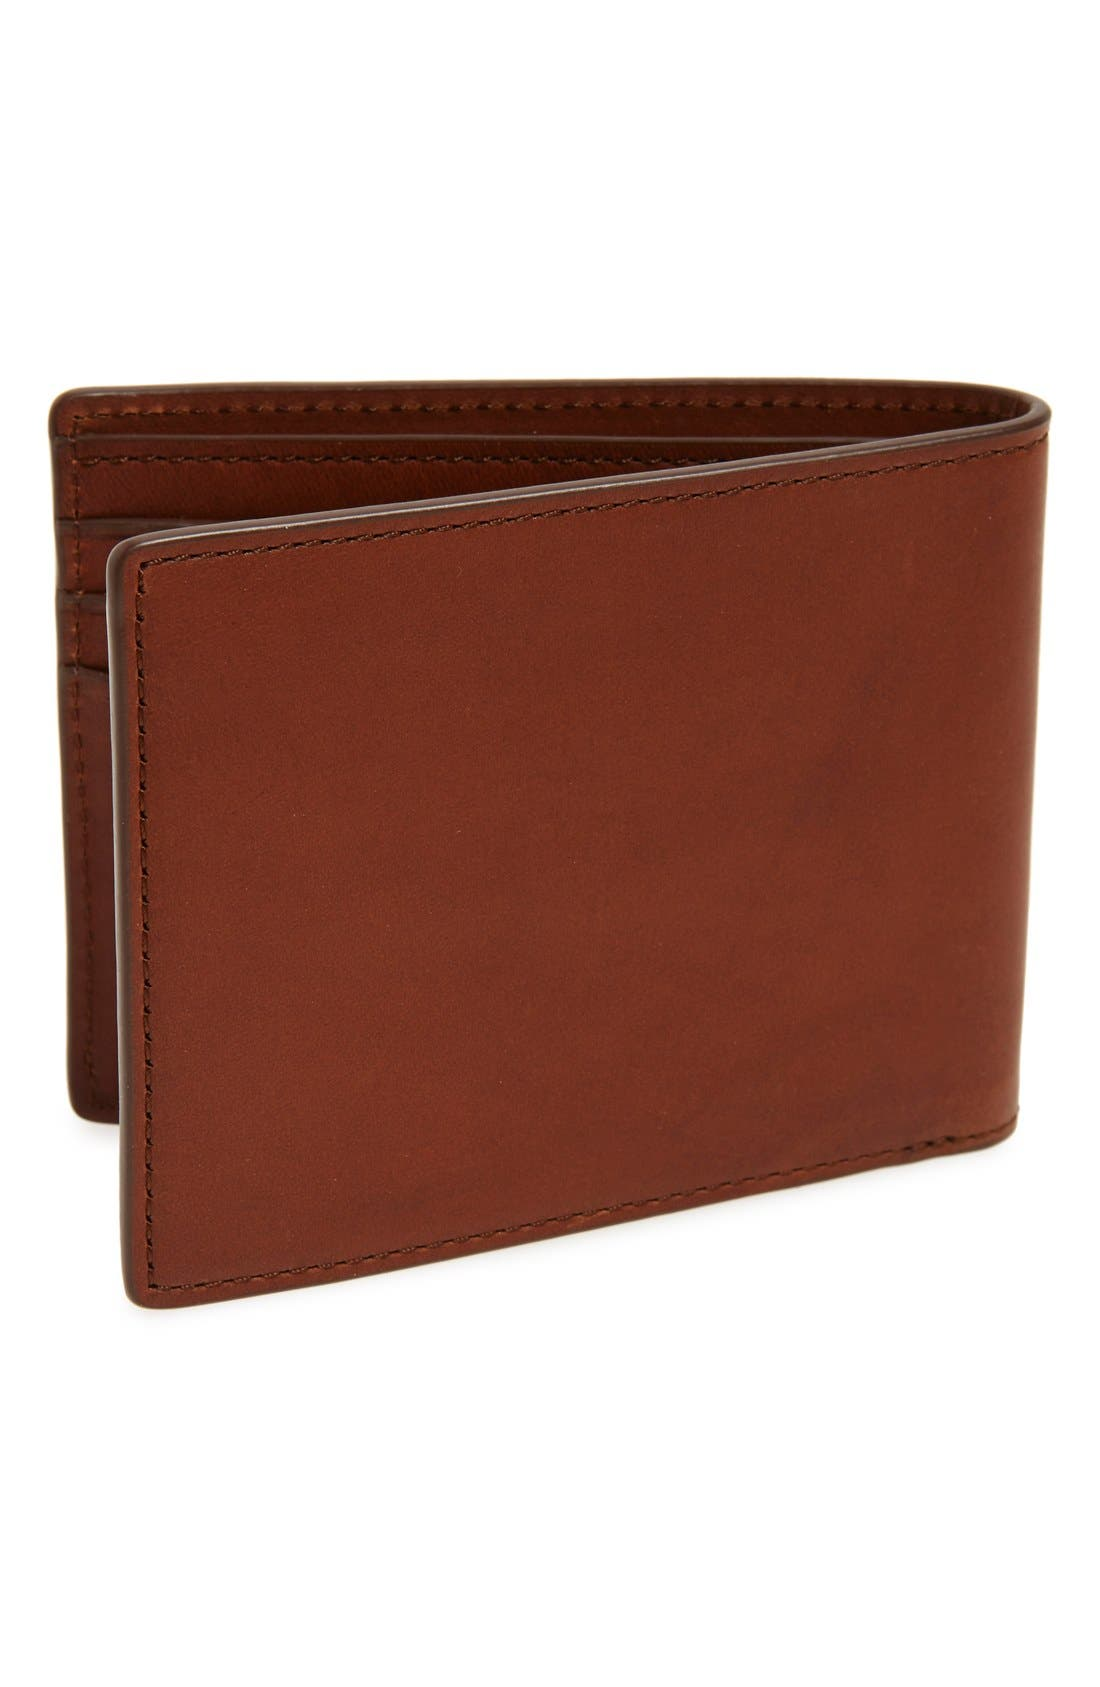 Hampshire Leather Bifold Wallet,                             Alternate thumbnail 3, color,                             Brown